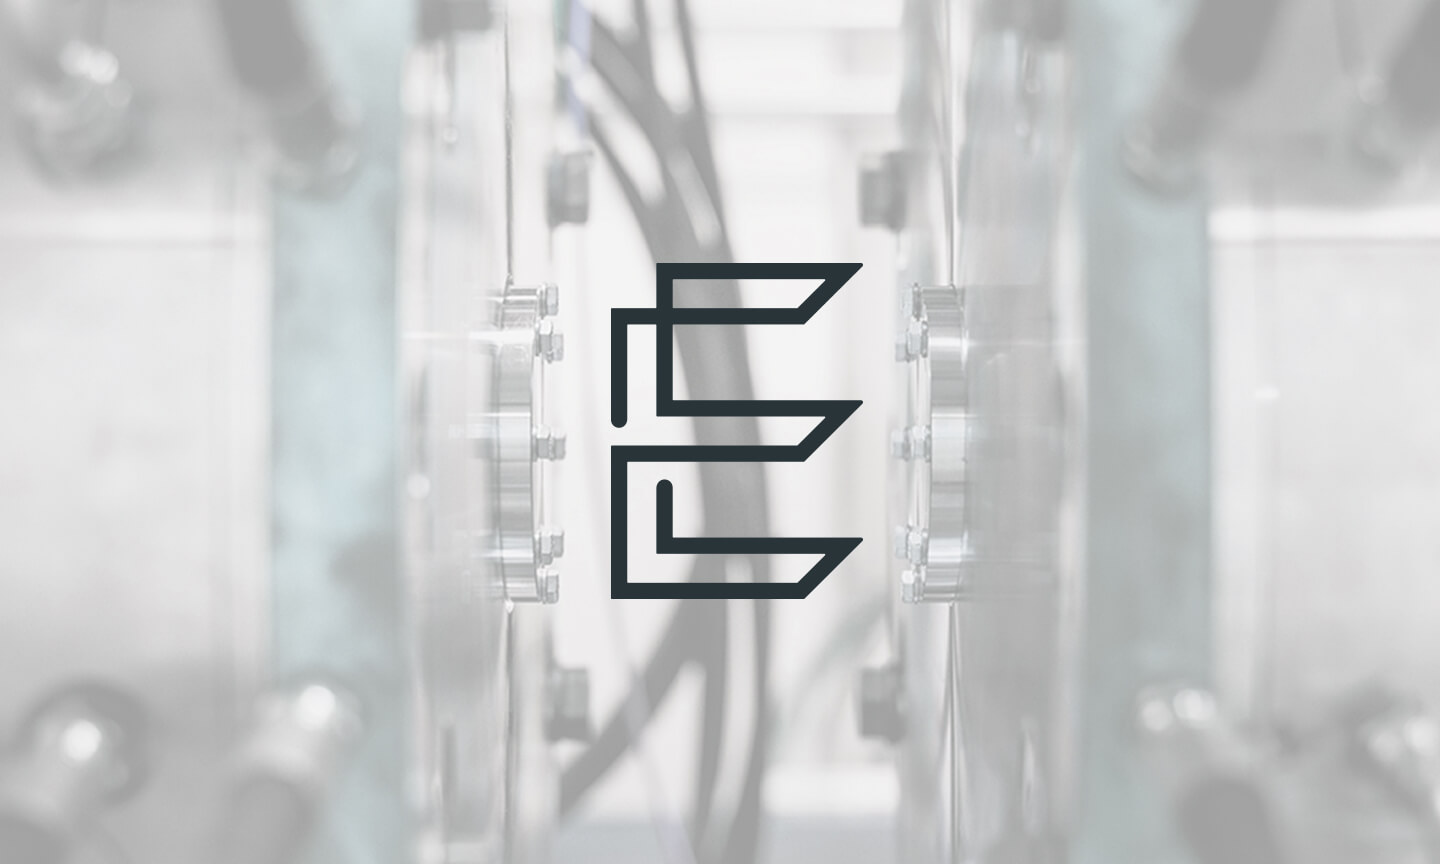 Enable Innovation Product Development company's logo overlayed on a photo of a shiny industrial fitting made of metal